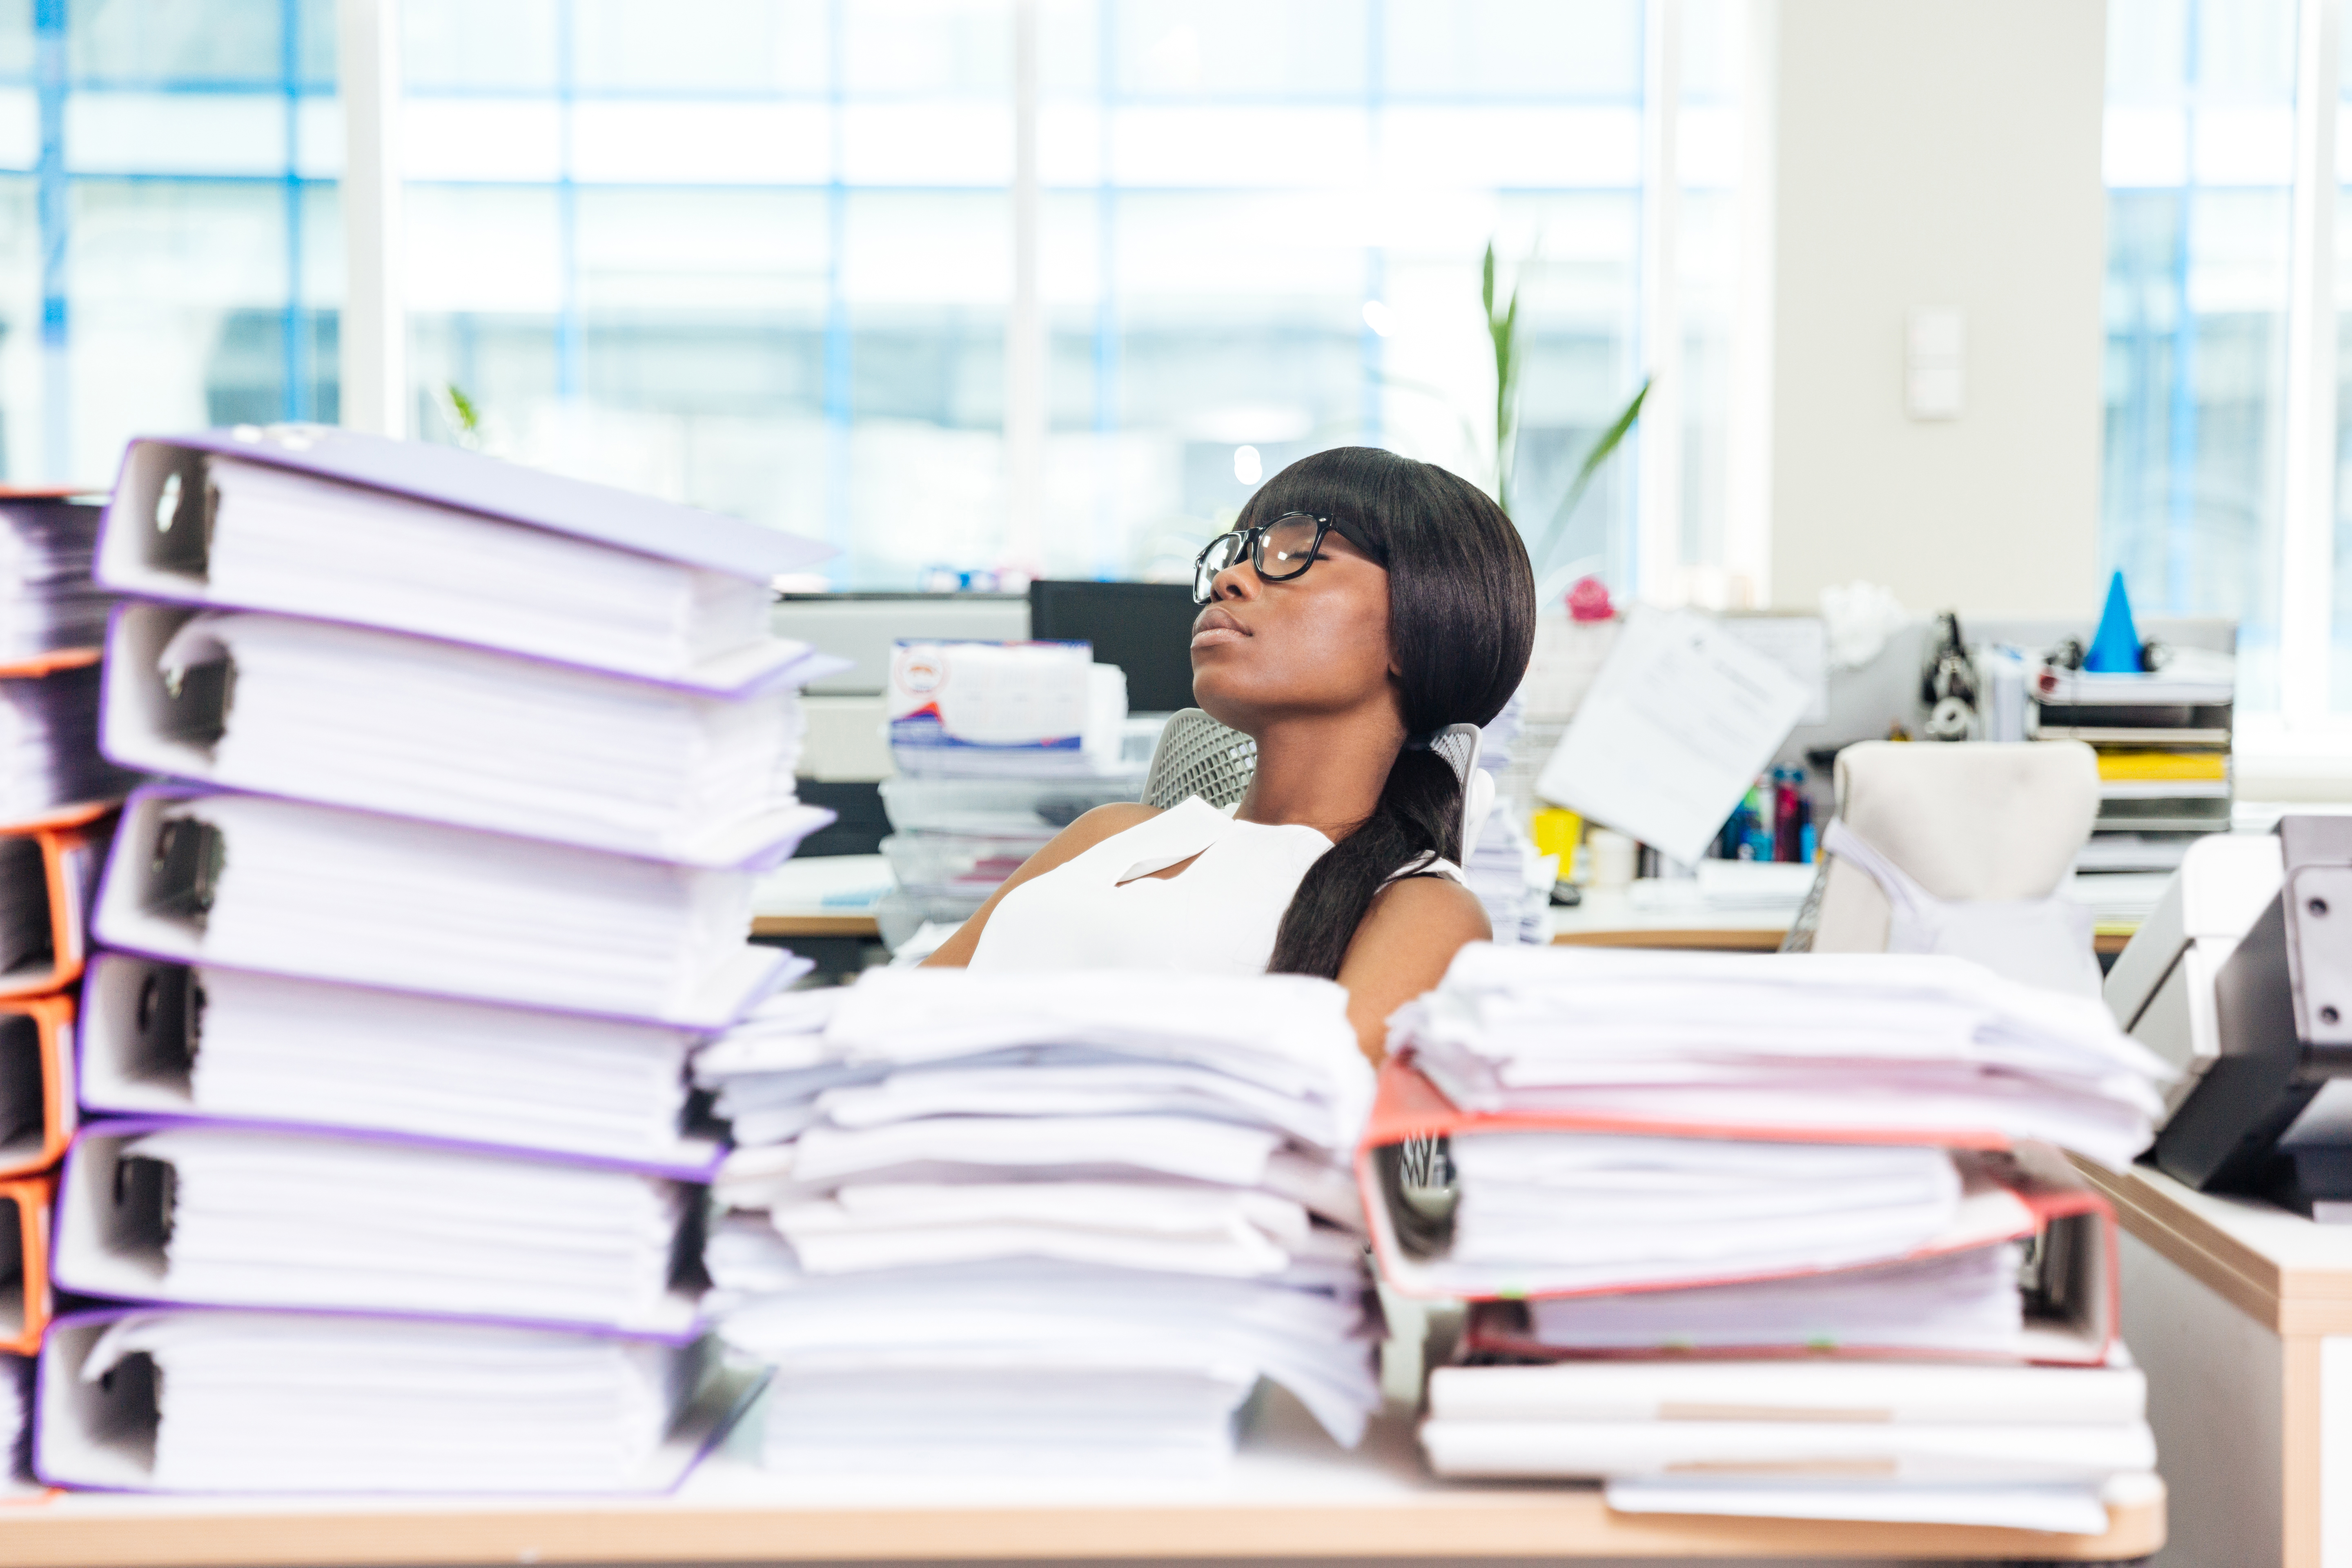 businesswoman-sleeping-in-office-with-many-work-P8JXKTP